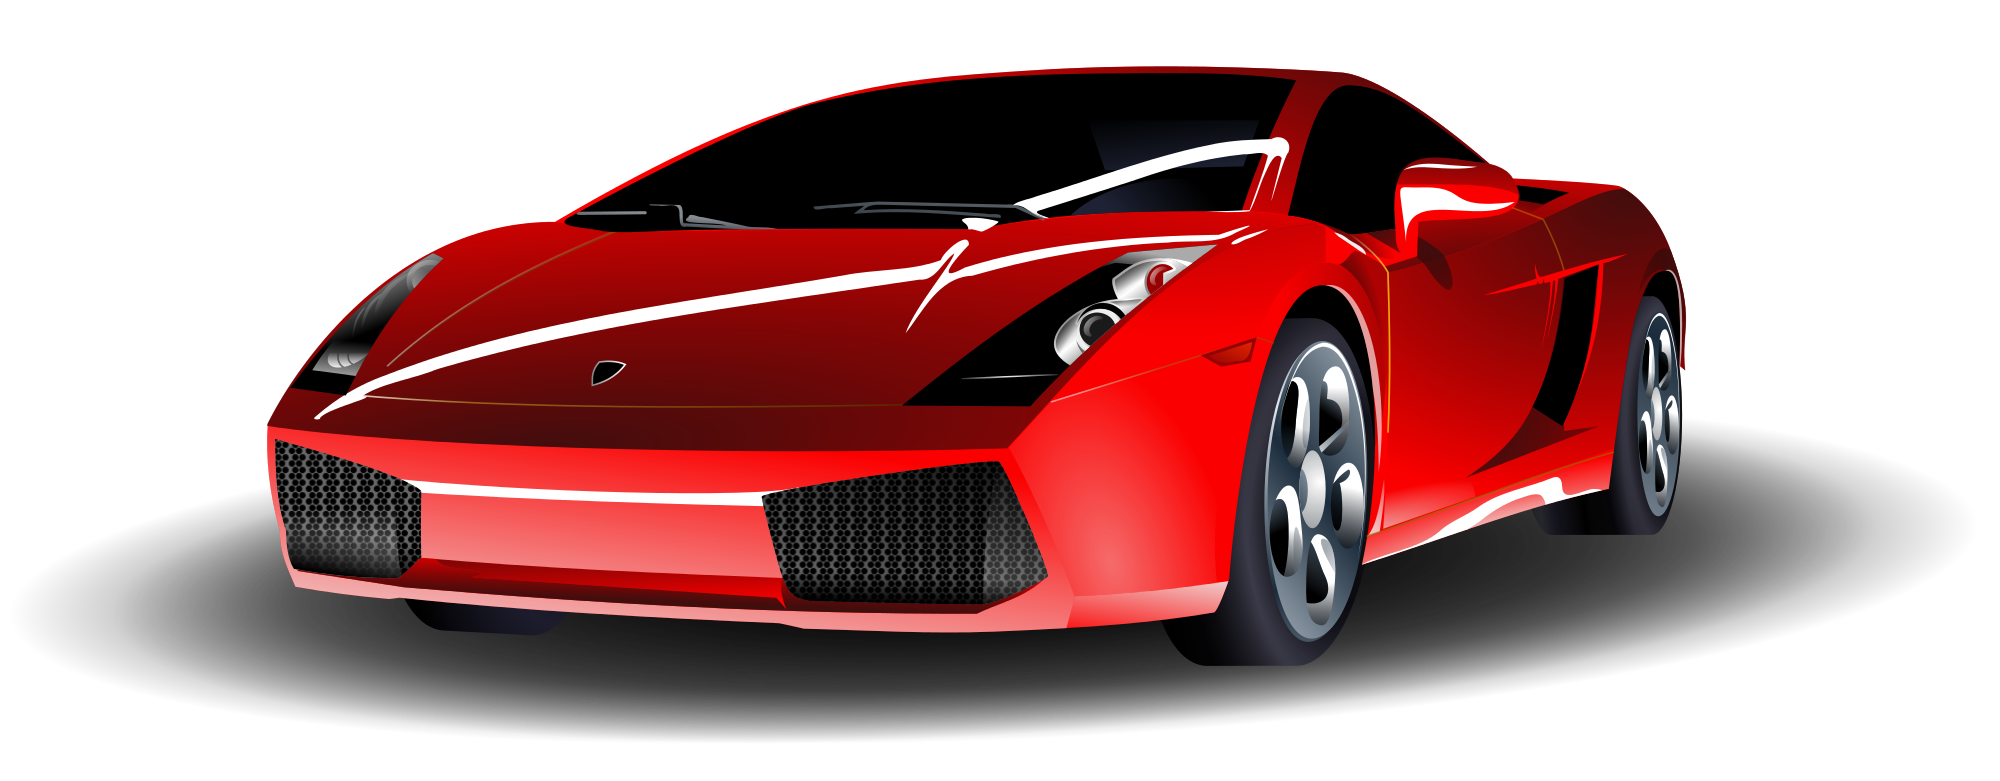 File red lamborghini svg. Fancy car clipart transparent